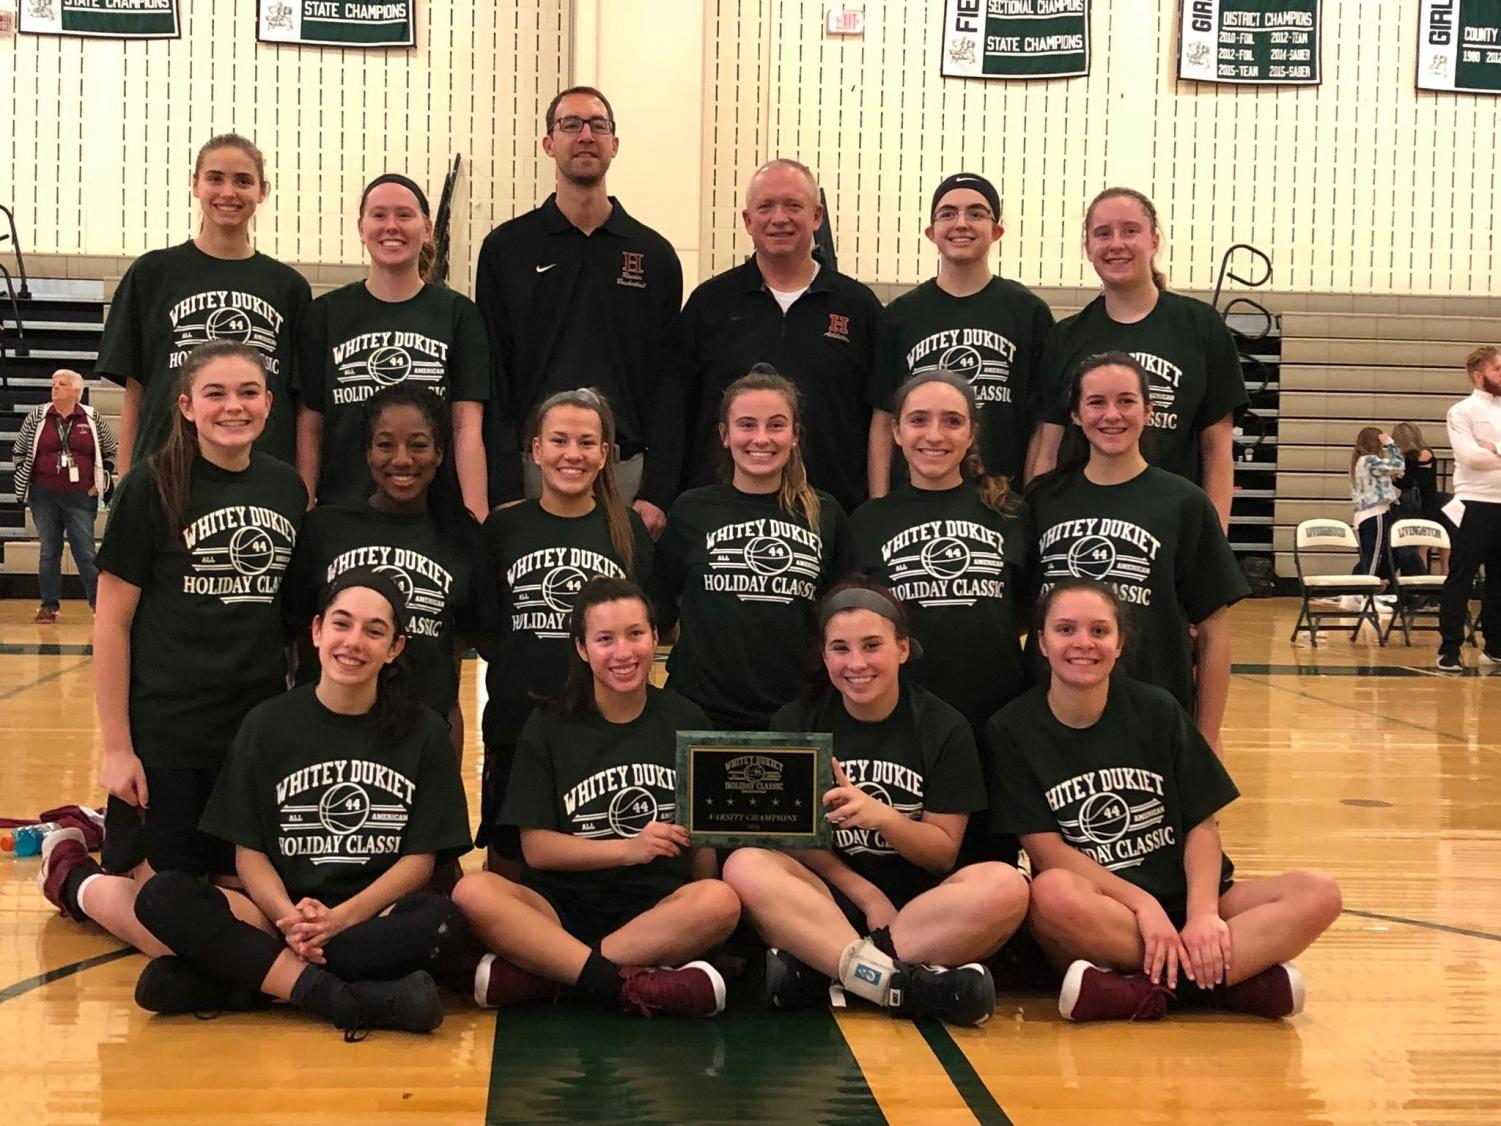 The Lady Raiders and head coach Ian Progin pose with their well-deserved championship hardware after winning the holiday tournament.